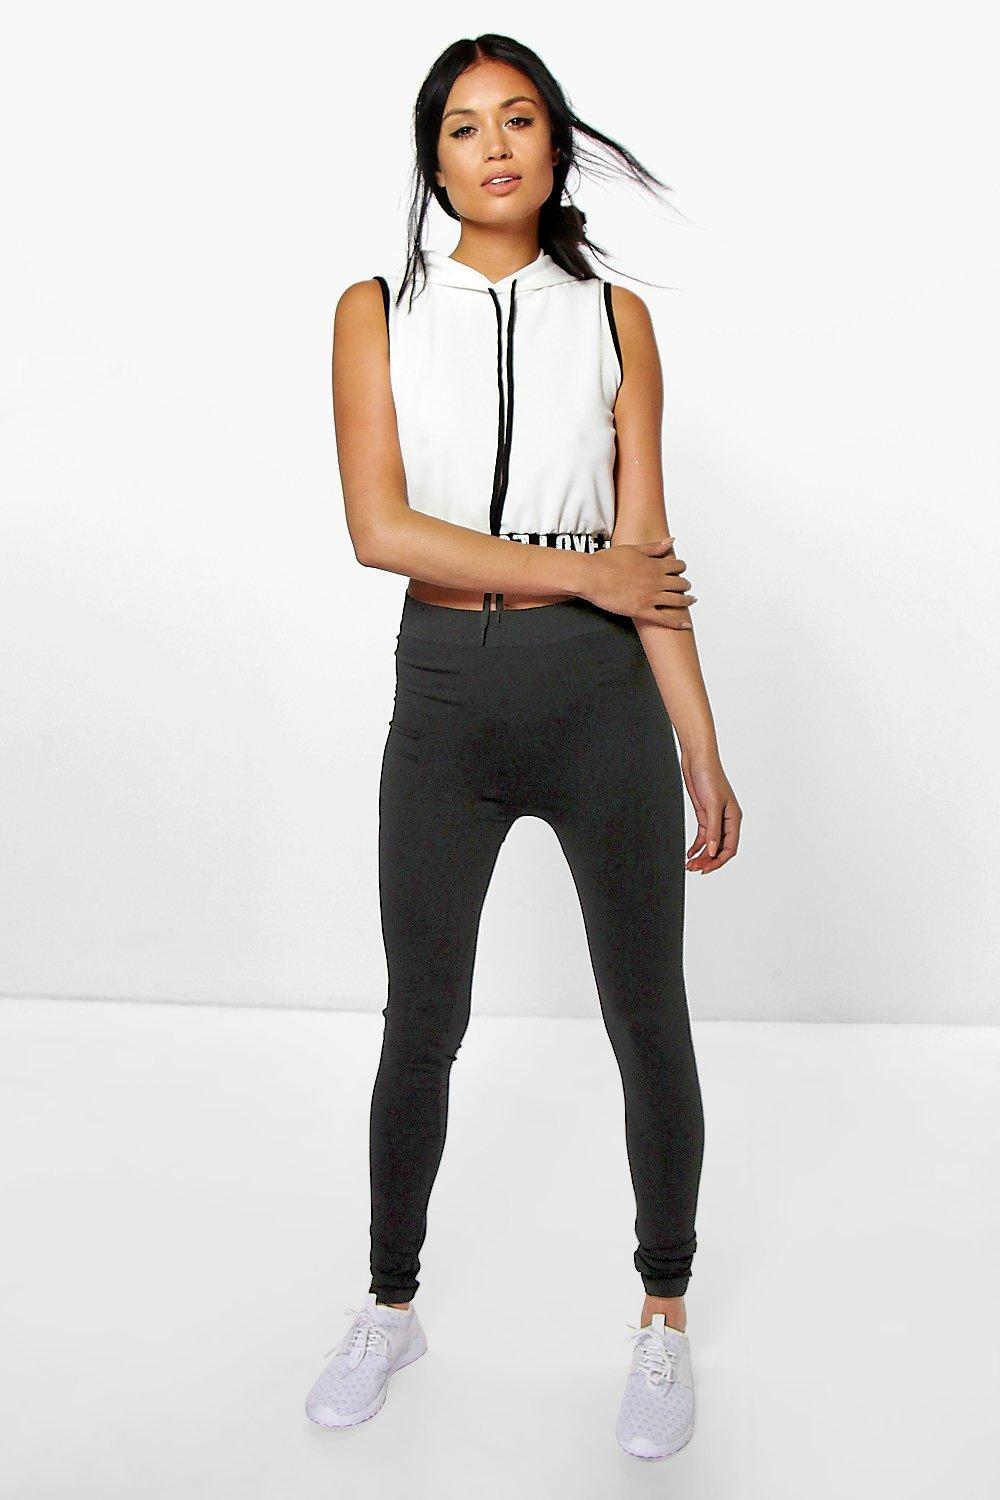 Valencia Basic Seamless High Waist Leggings